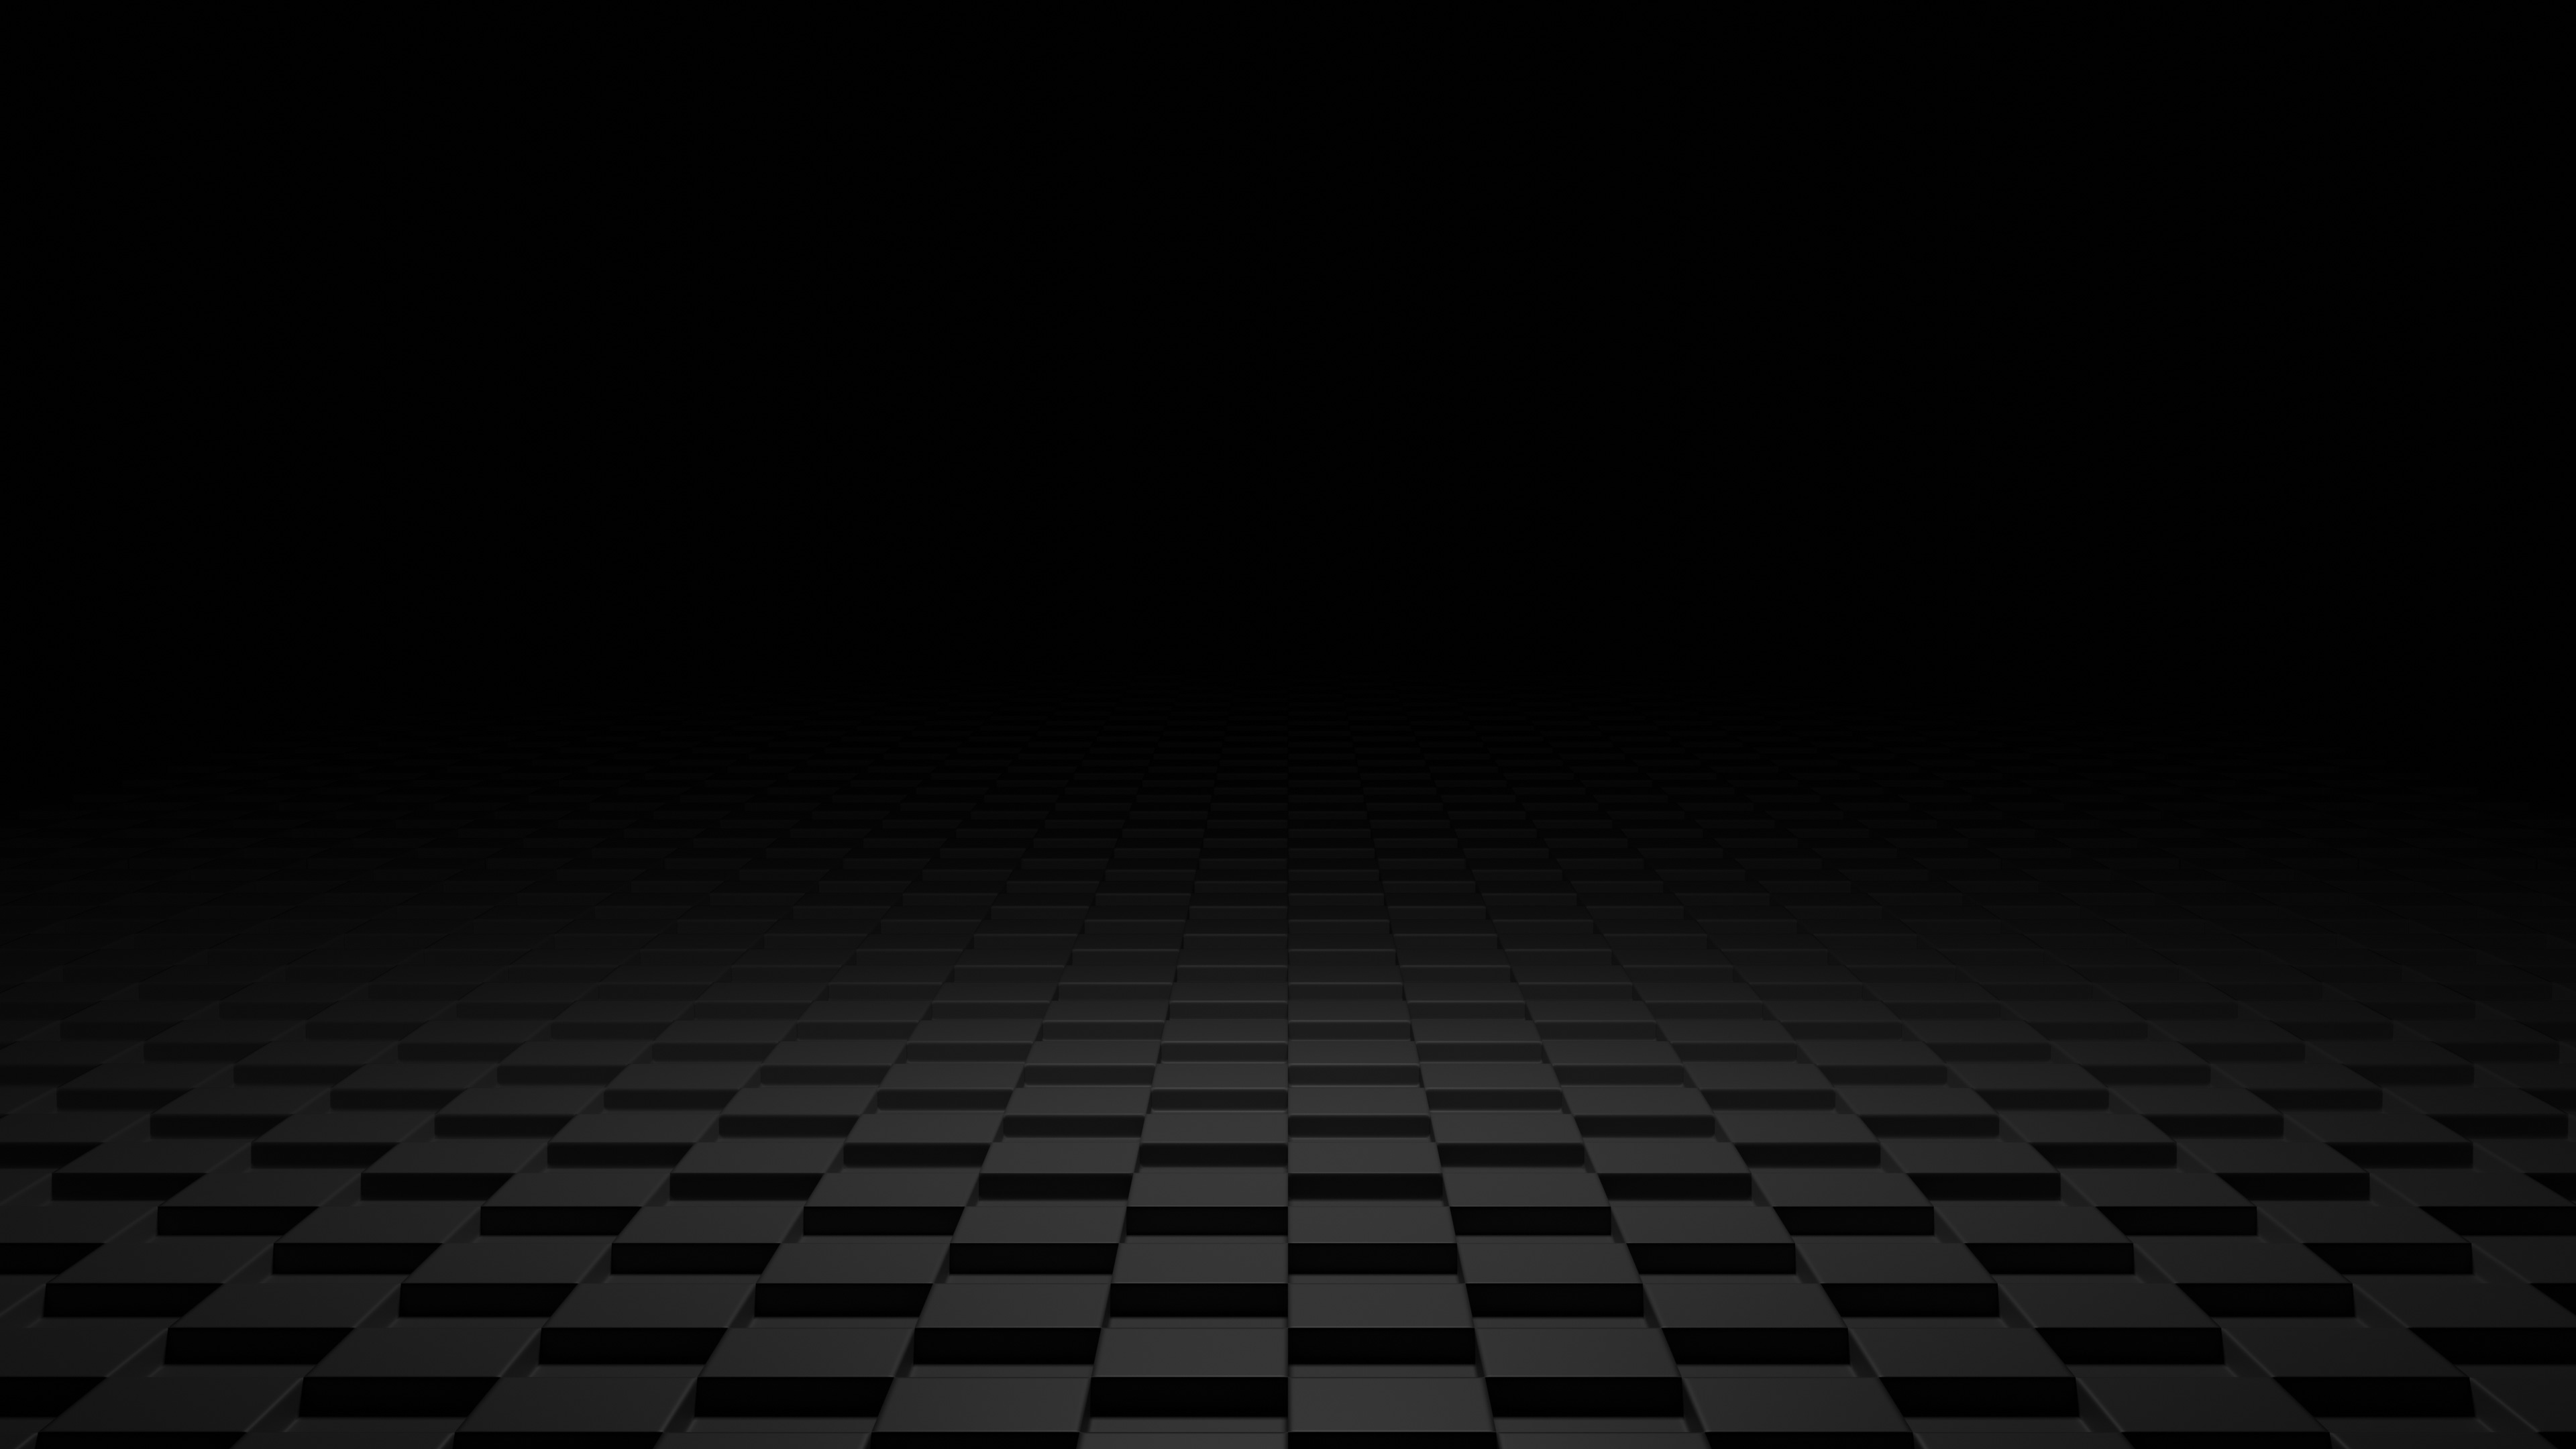 Dark 3d Shapes Floor Hd Abstract 4k Wallpapers Images